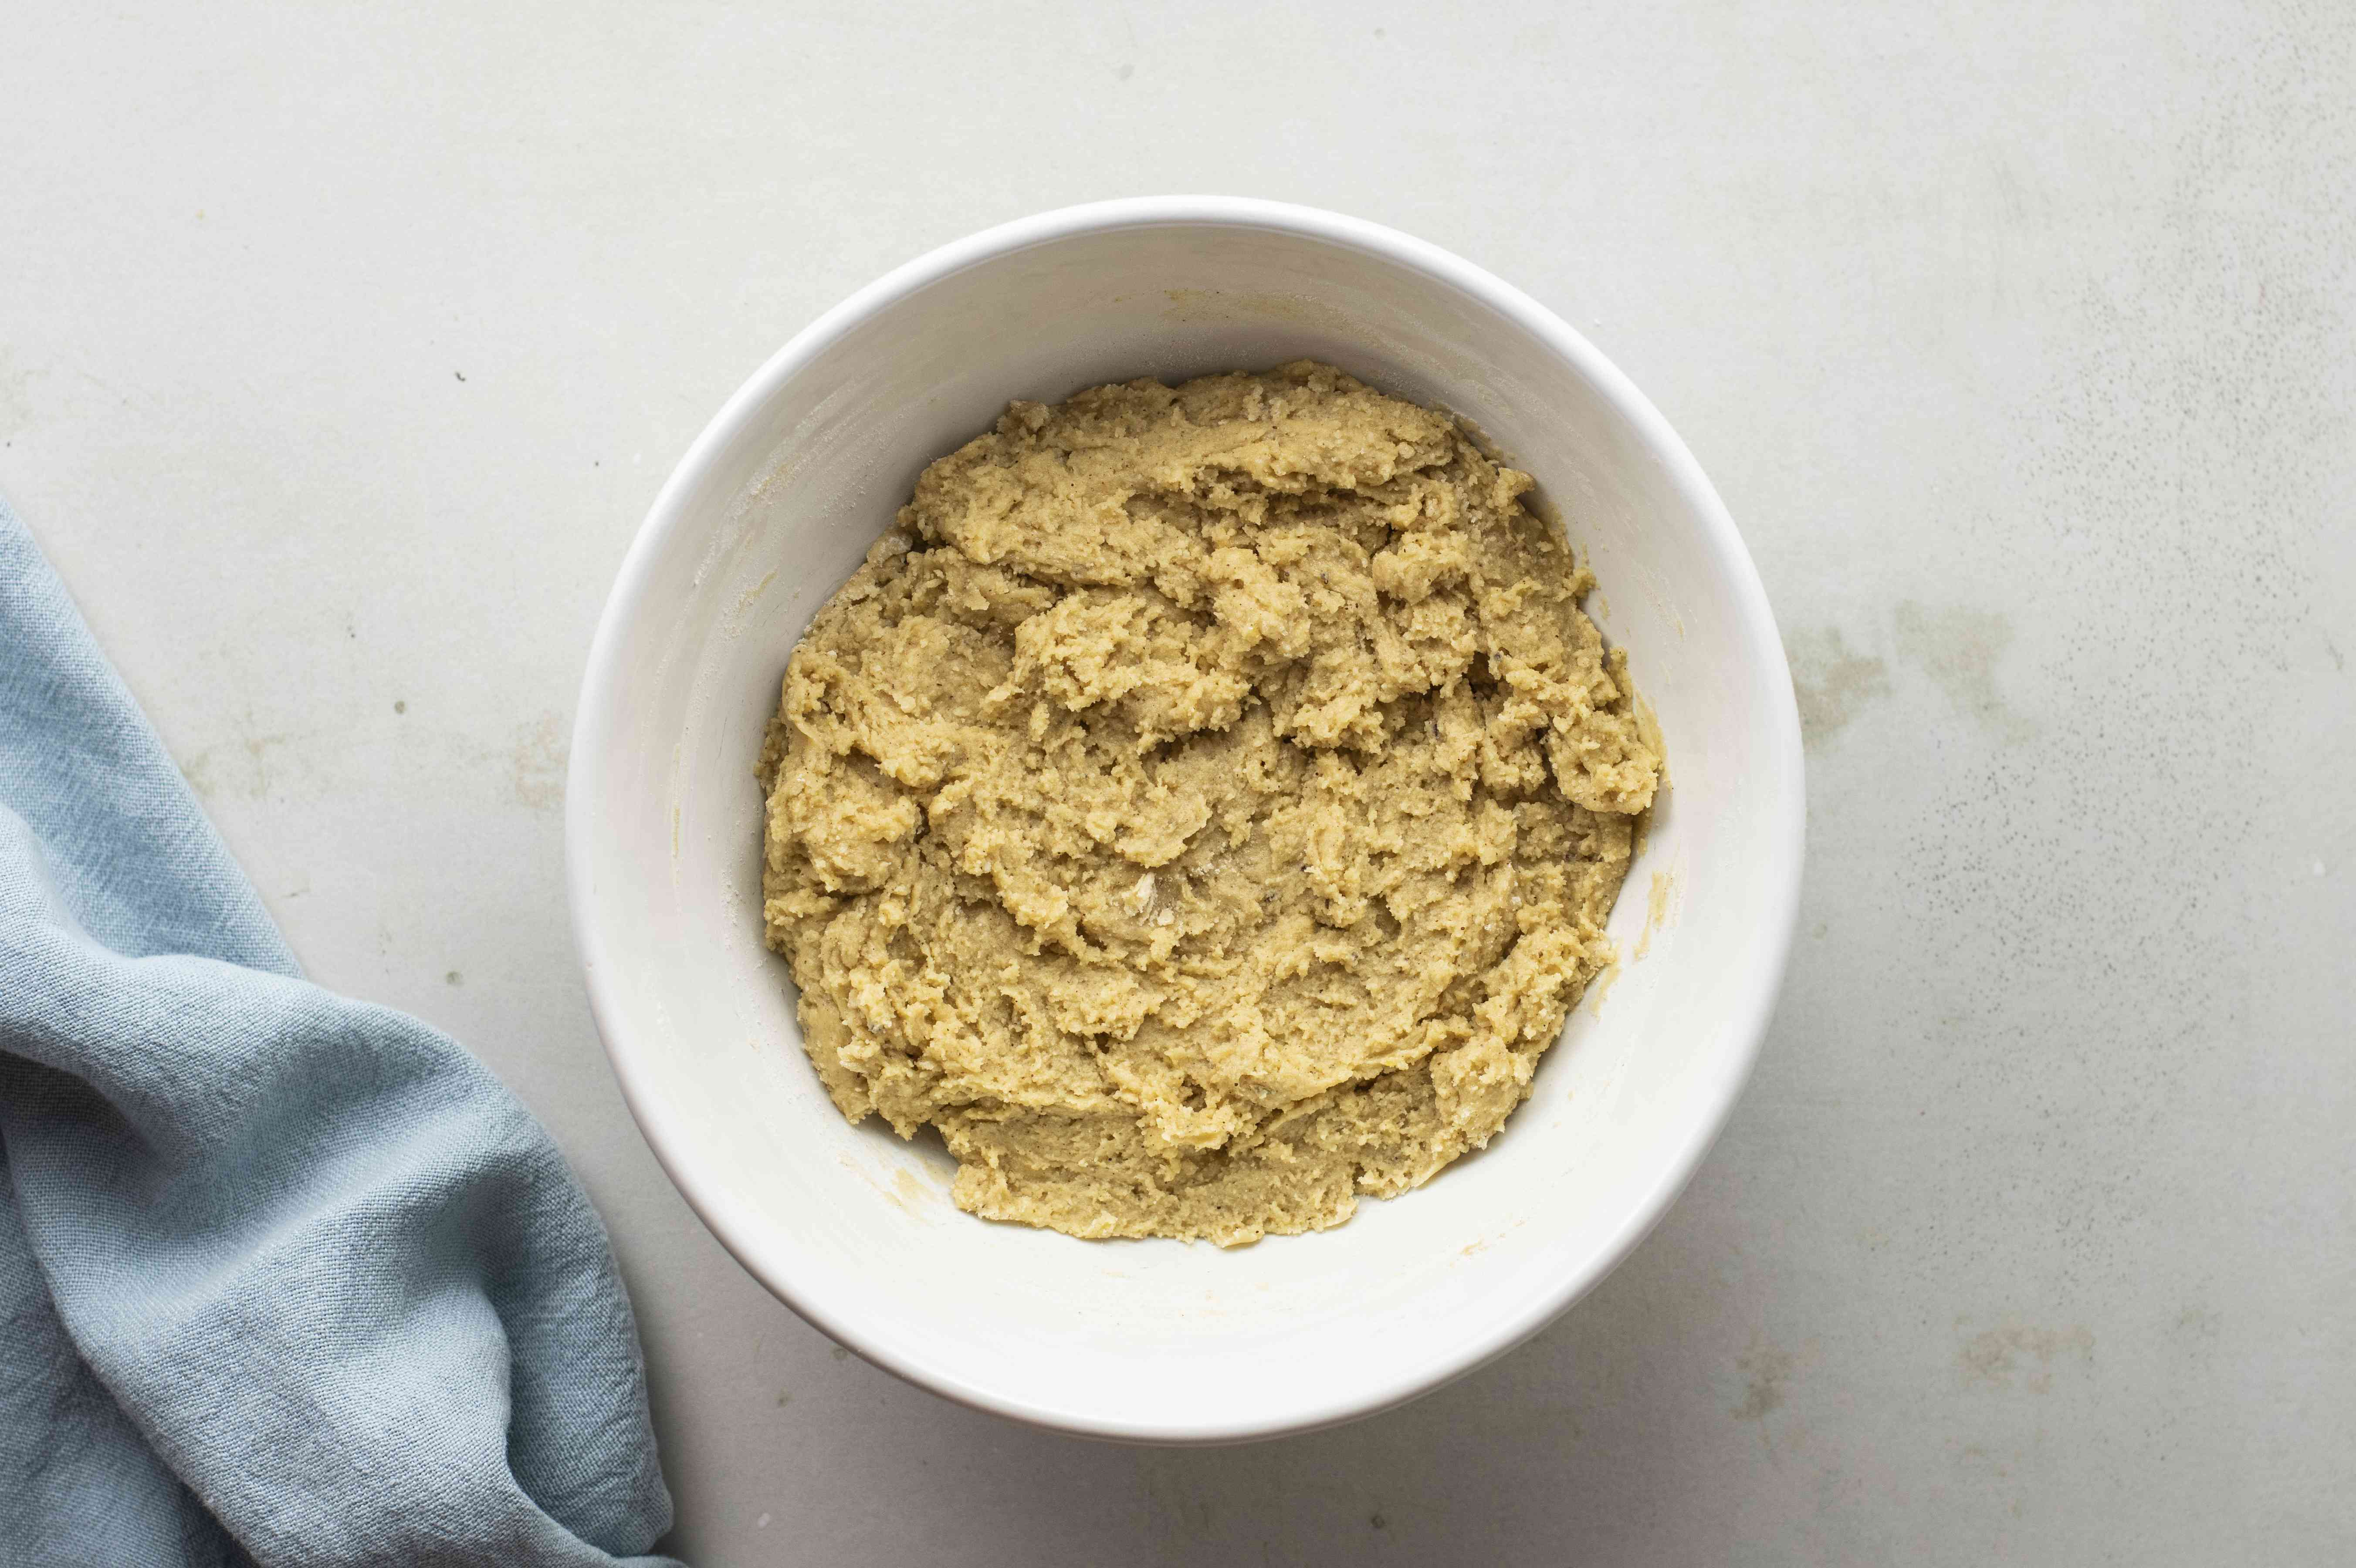 Mix in dry ingredients